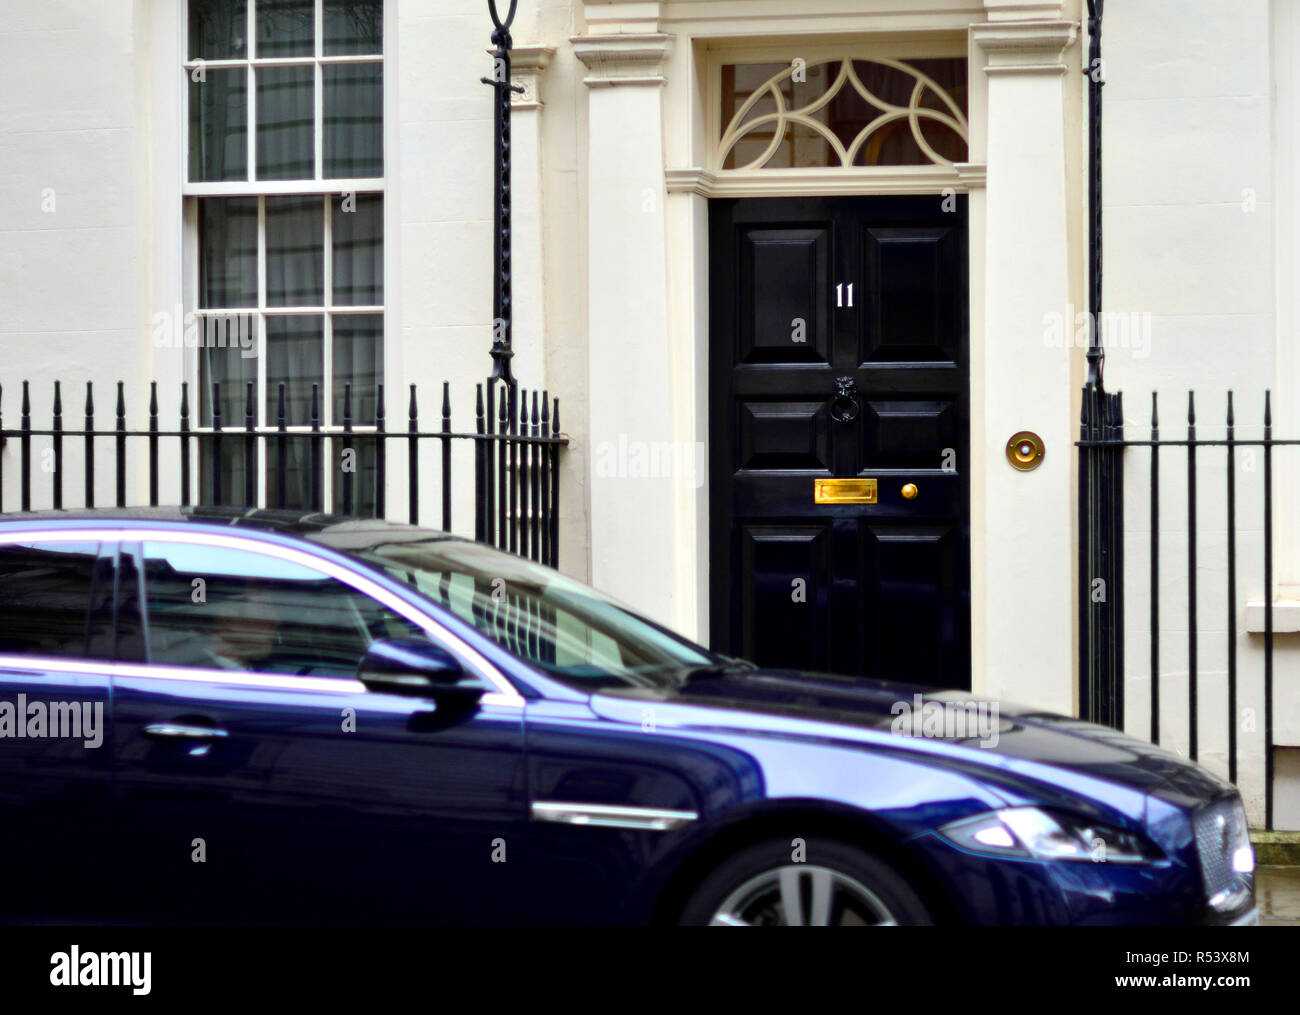 Ministerial car parked outside 11 Downing Street, London, England, UK. - Stock Image